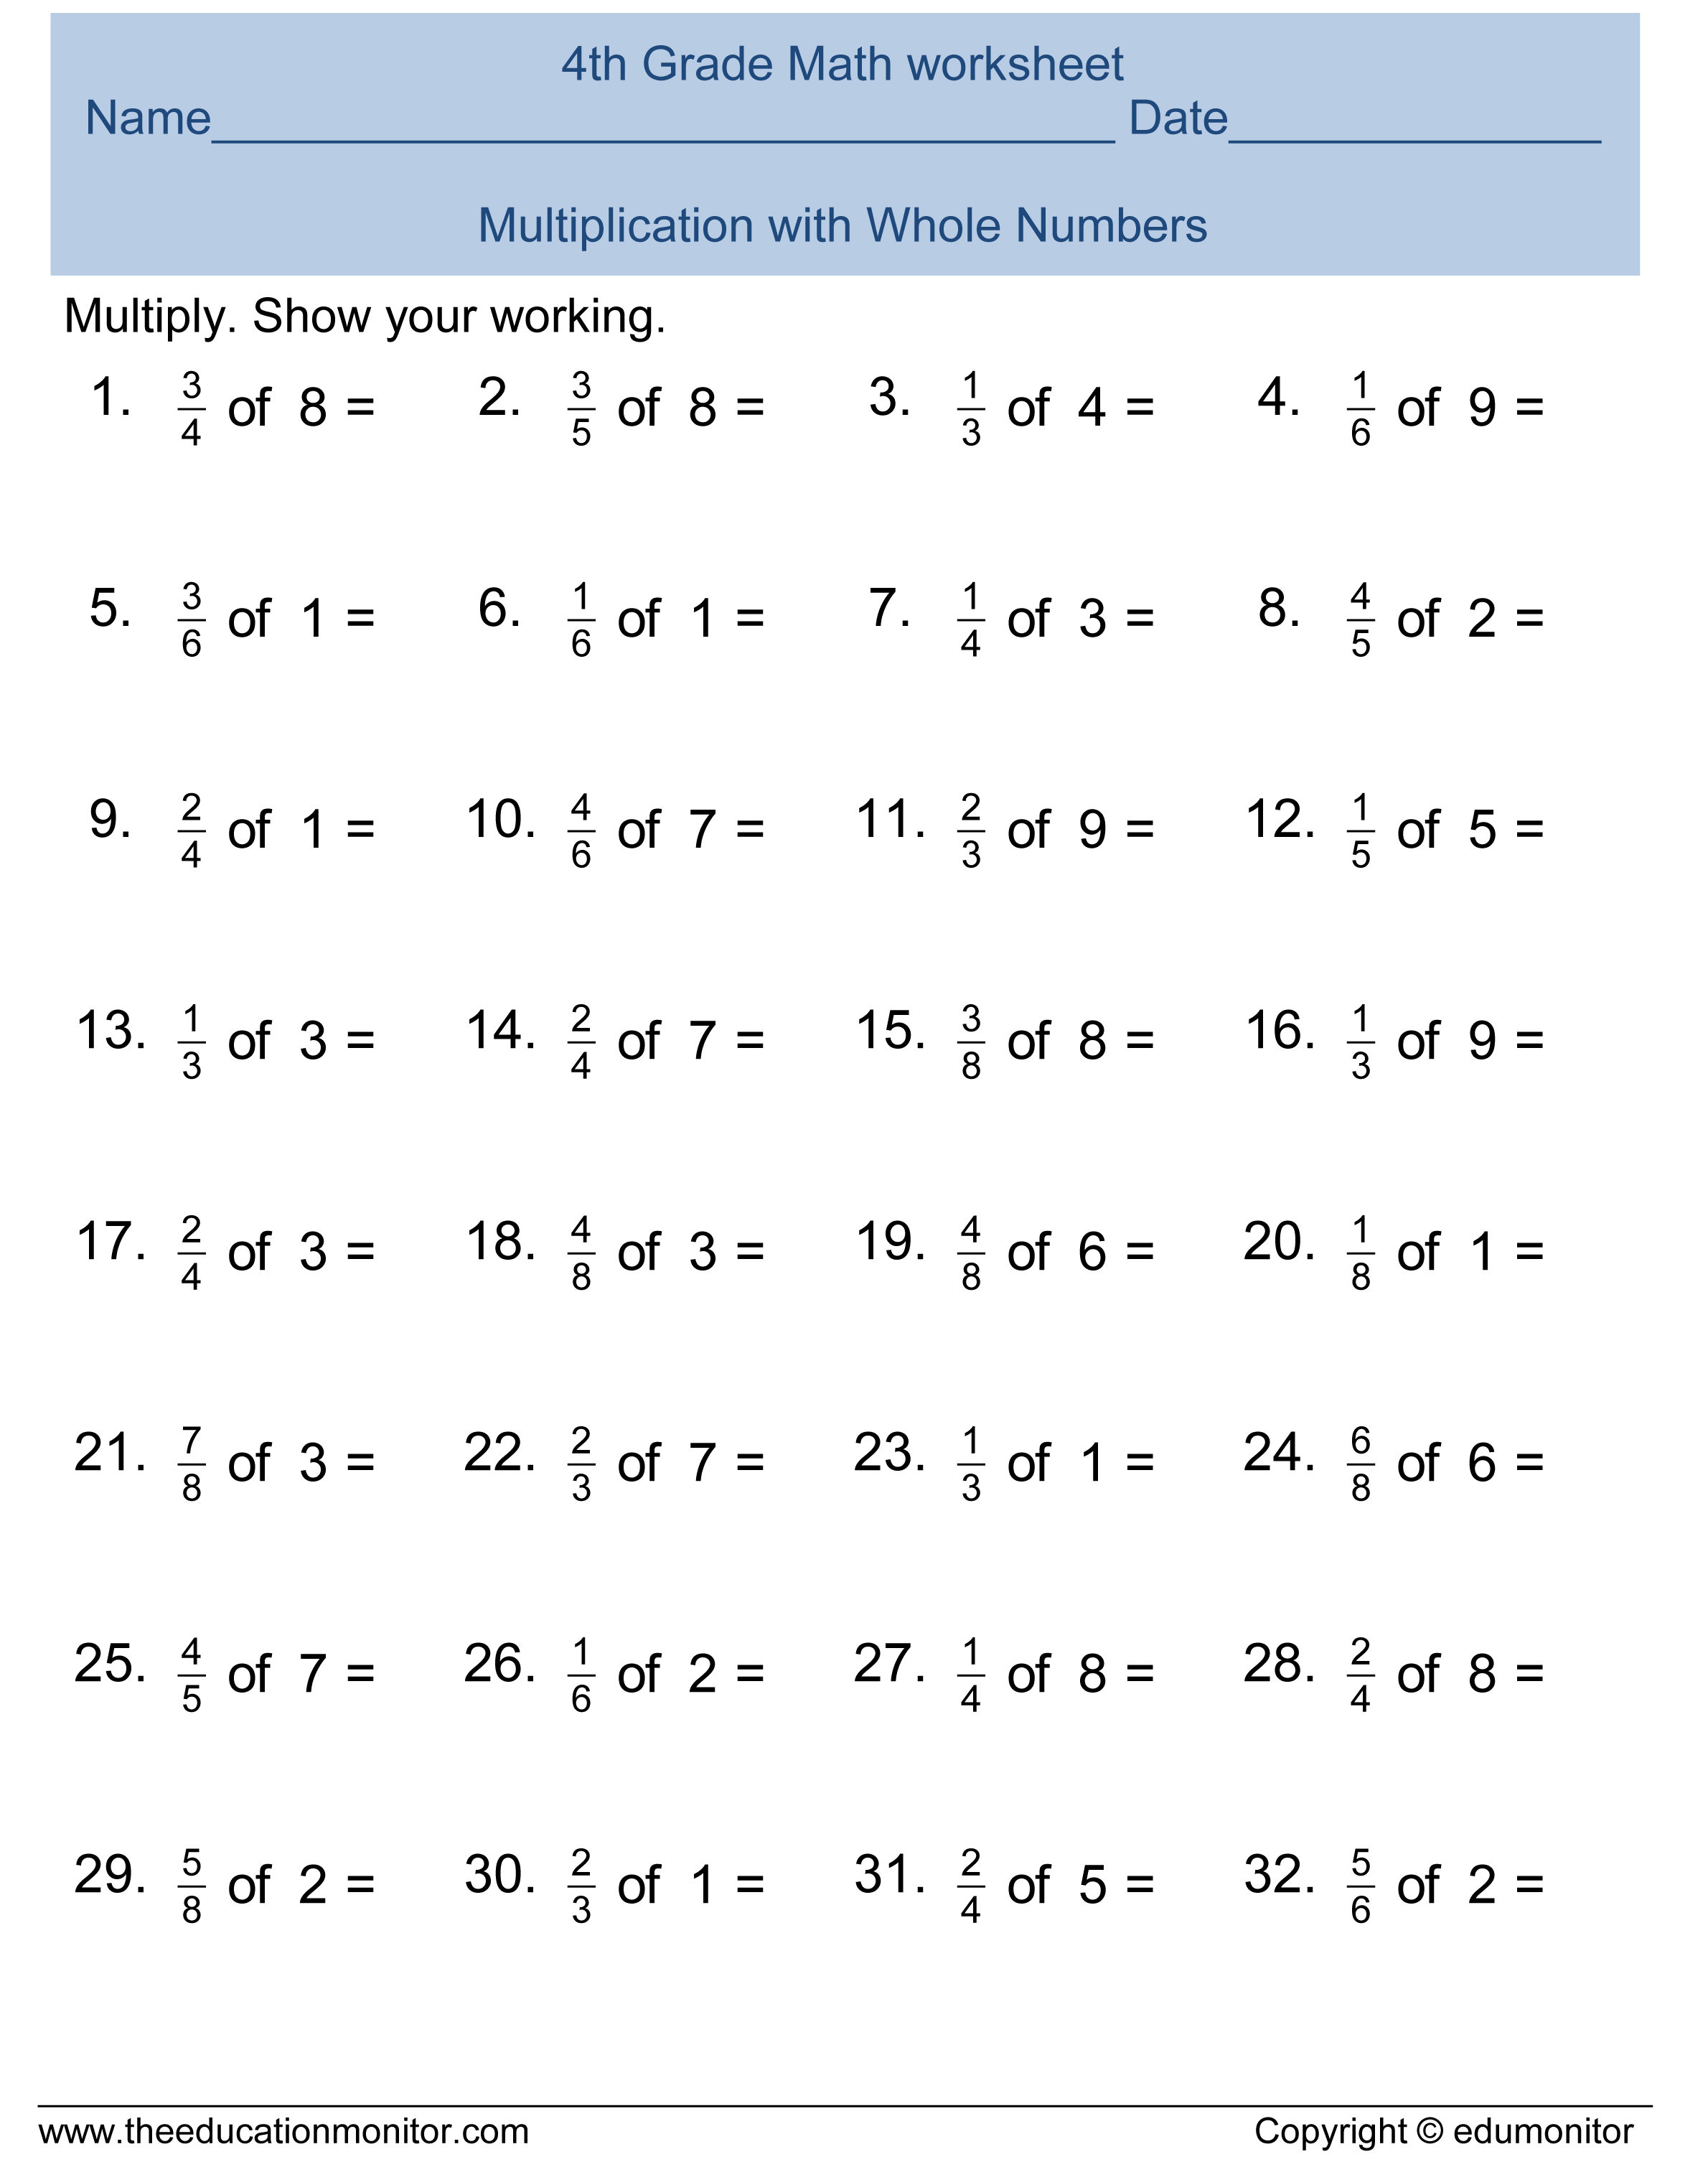 Printables Four Grade Math Worksheets math worksheets 4th grade subtraction 4 free printable k5 learning